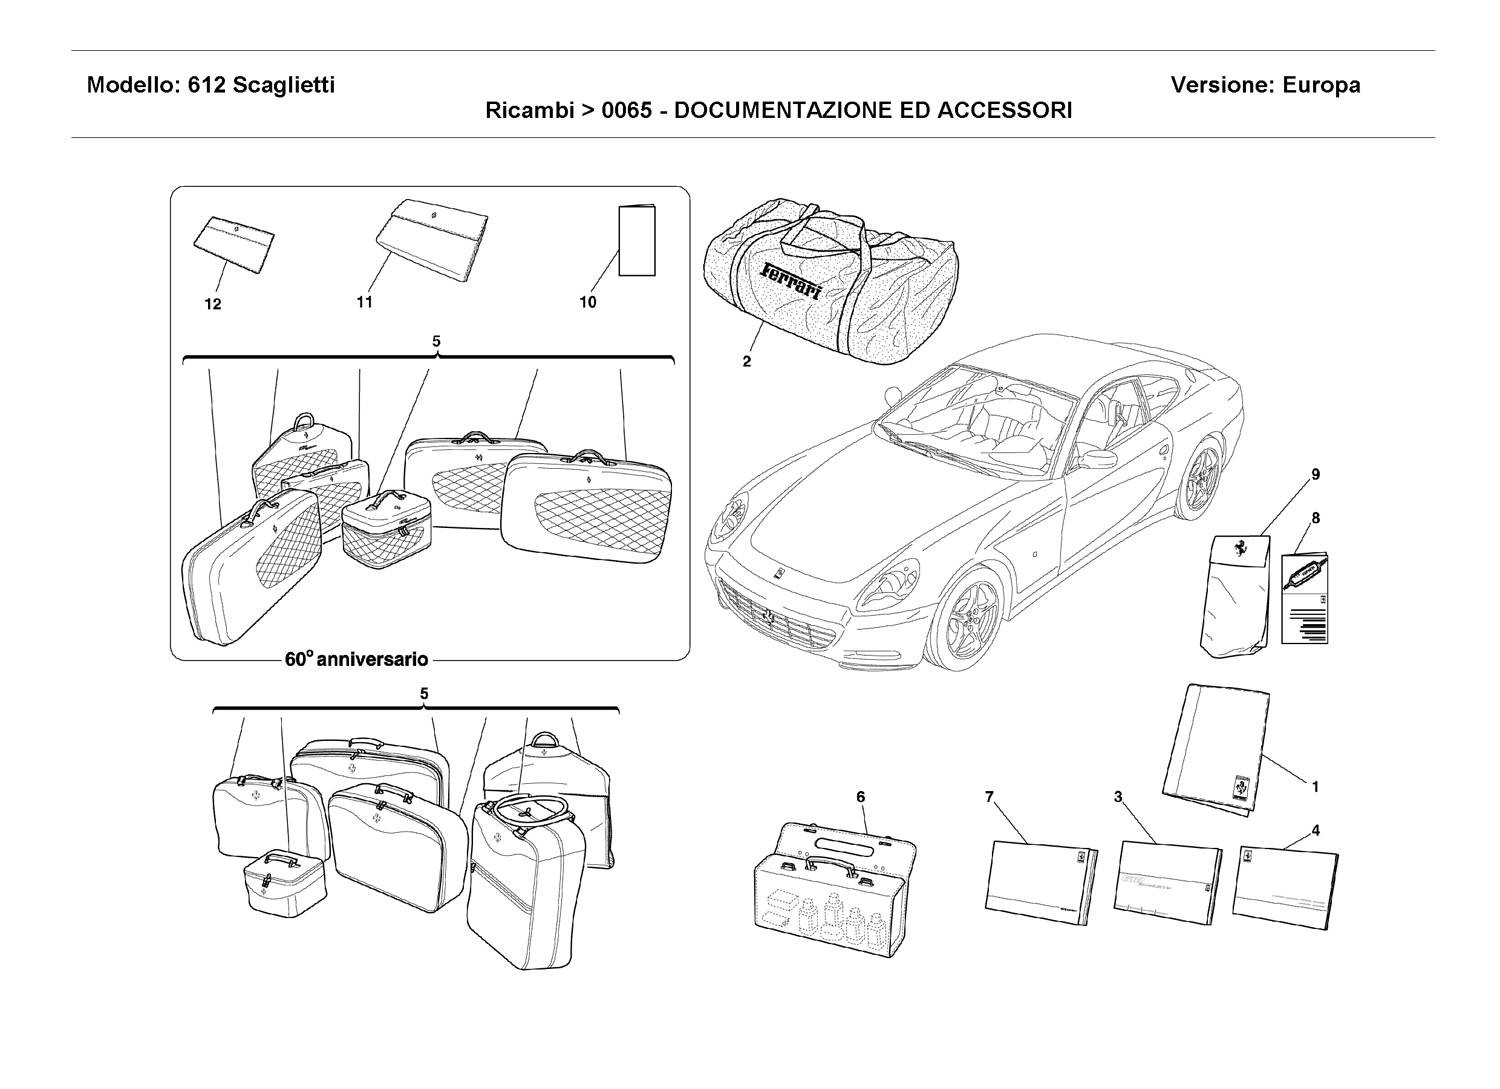 DOCUMENTATION AND ACCESSORIES